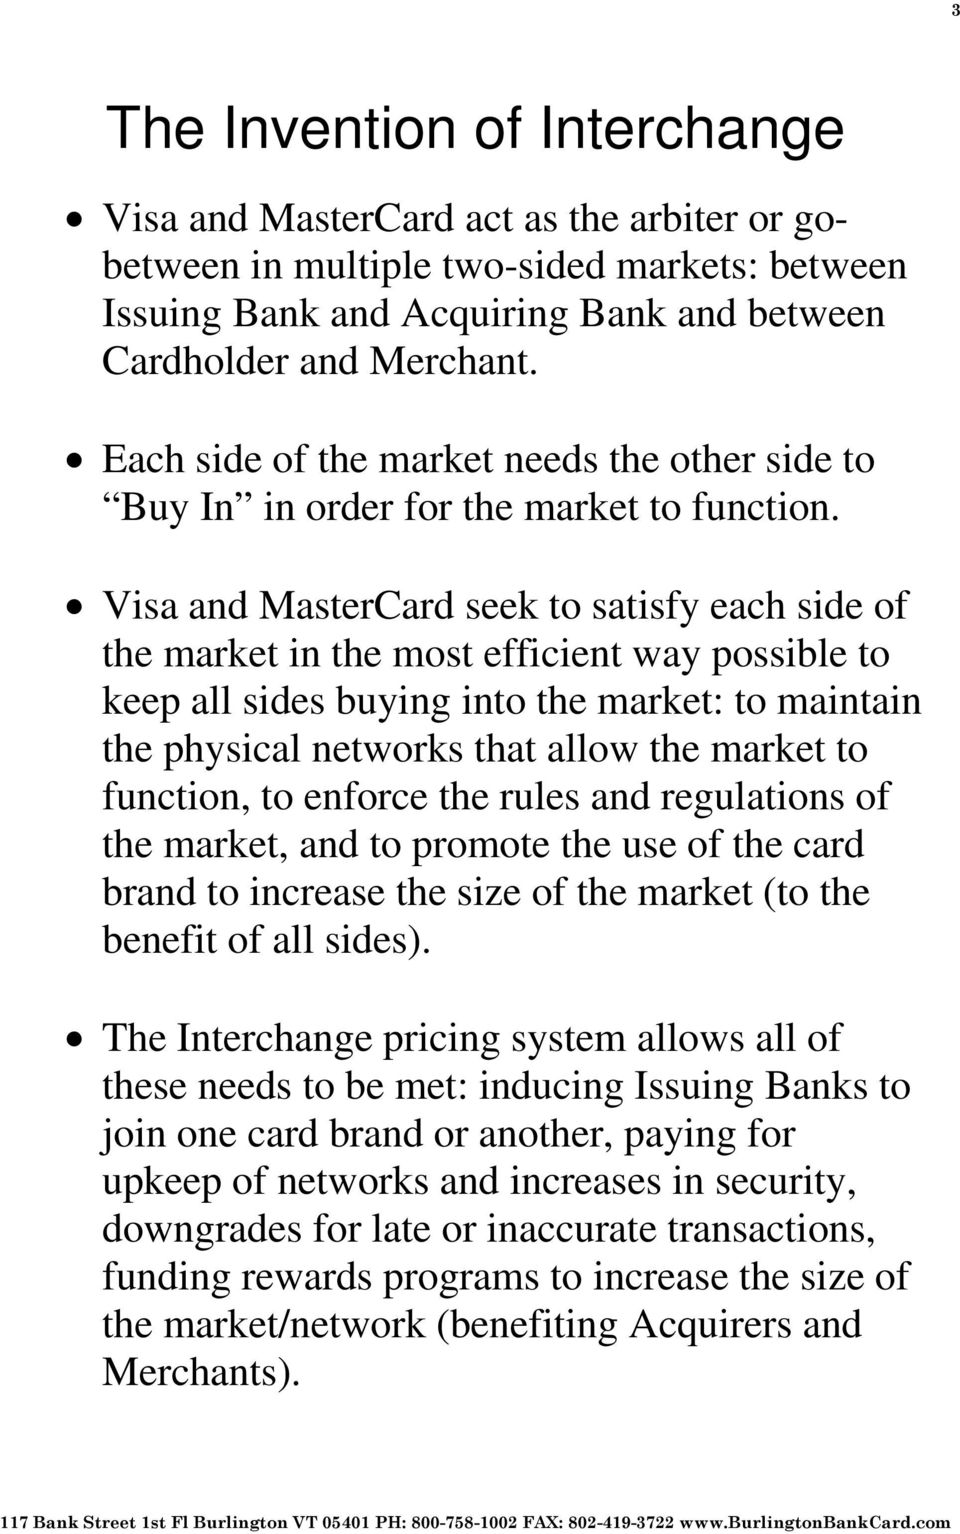 Visa and MasterCard seek to satisfy each side of the market in the most efficient way possible to keep all sides buying into the market: to maintain the physical networks that allow the market to